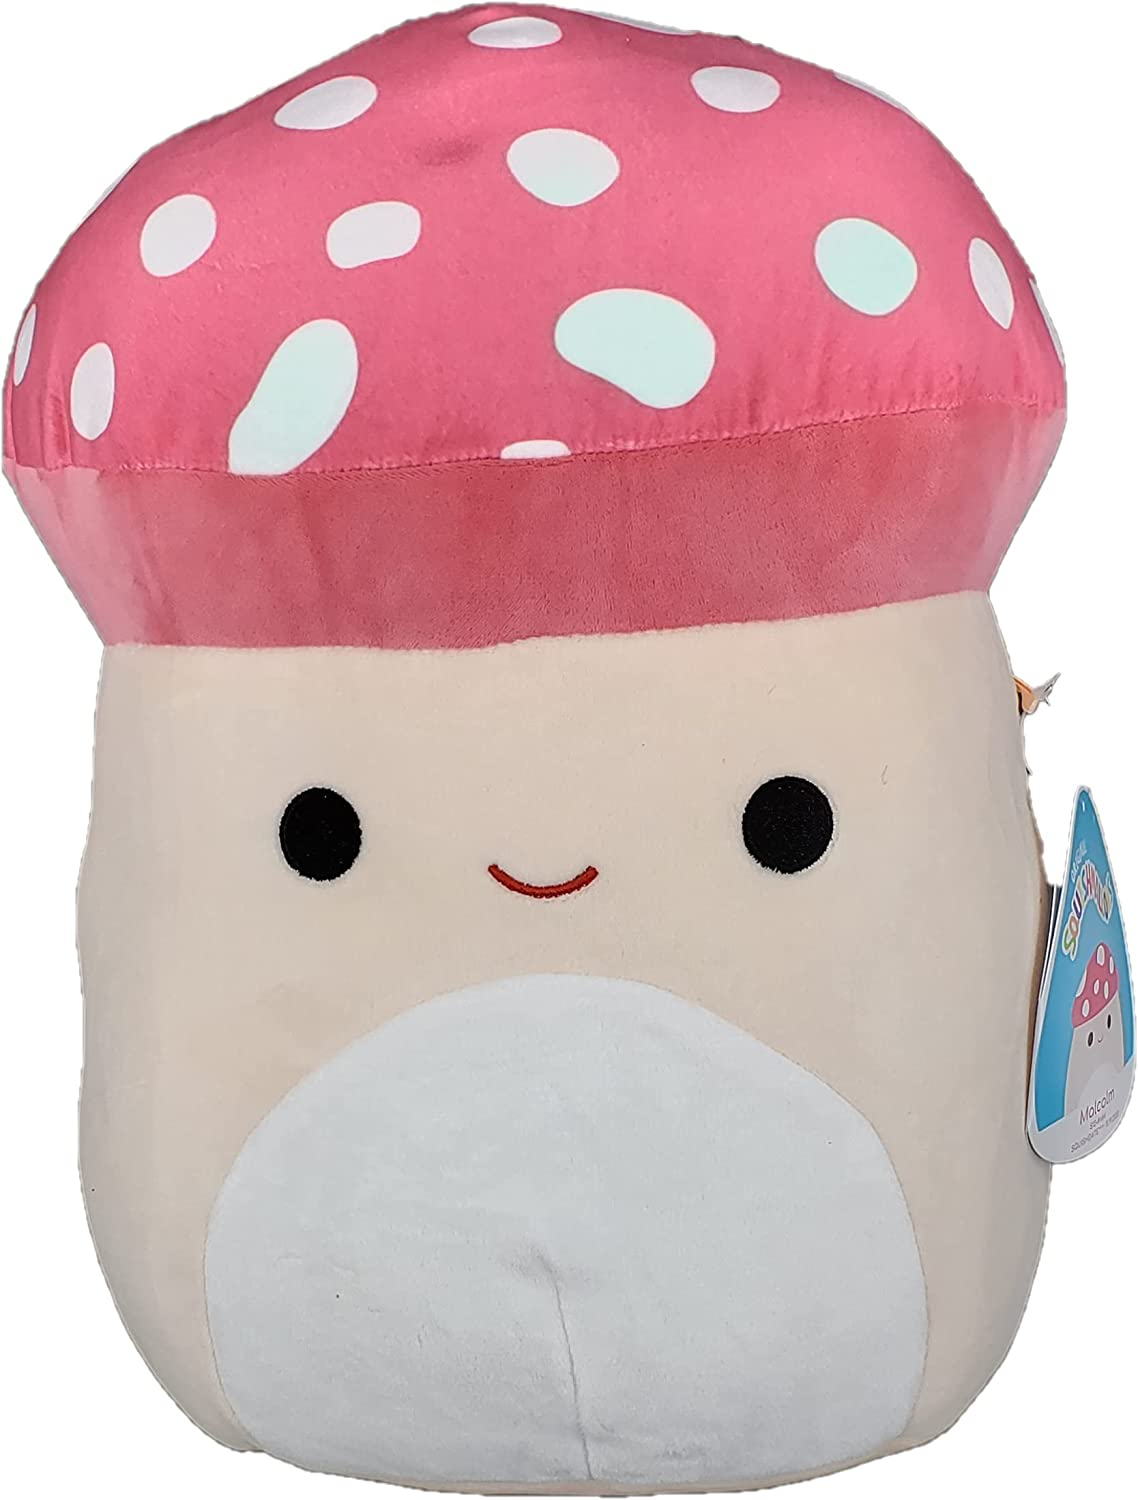 SQUISHMALLOW KellyToys Outstanding - 12 Inch Malcolm Mushroom The 25% OFF 30cm